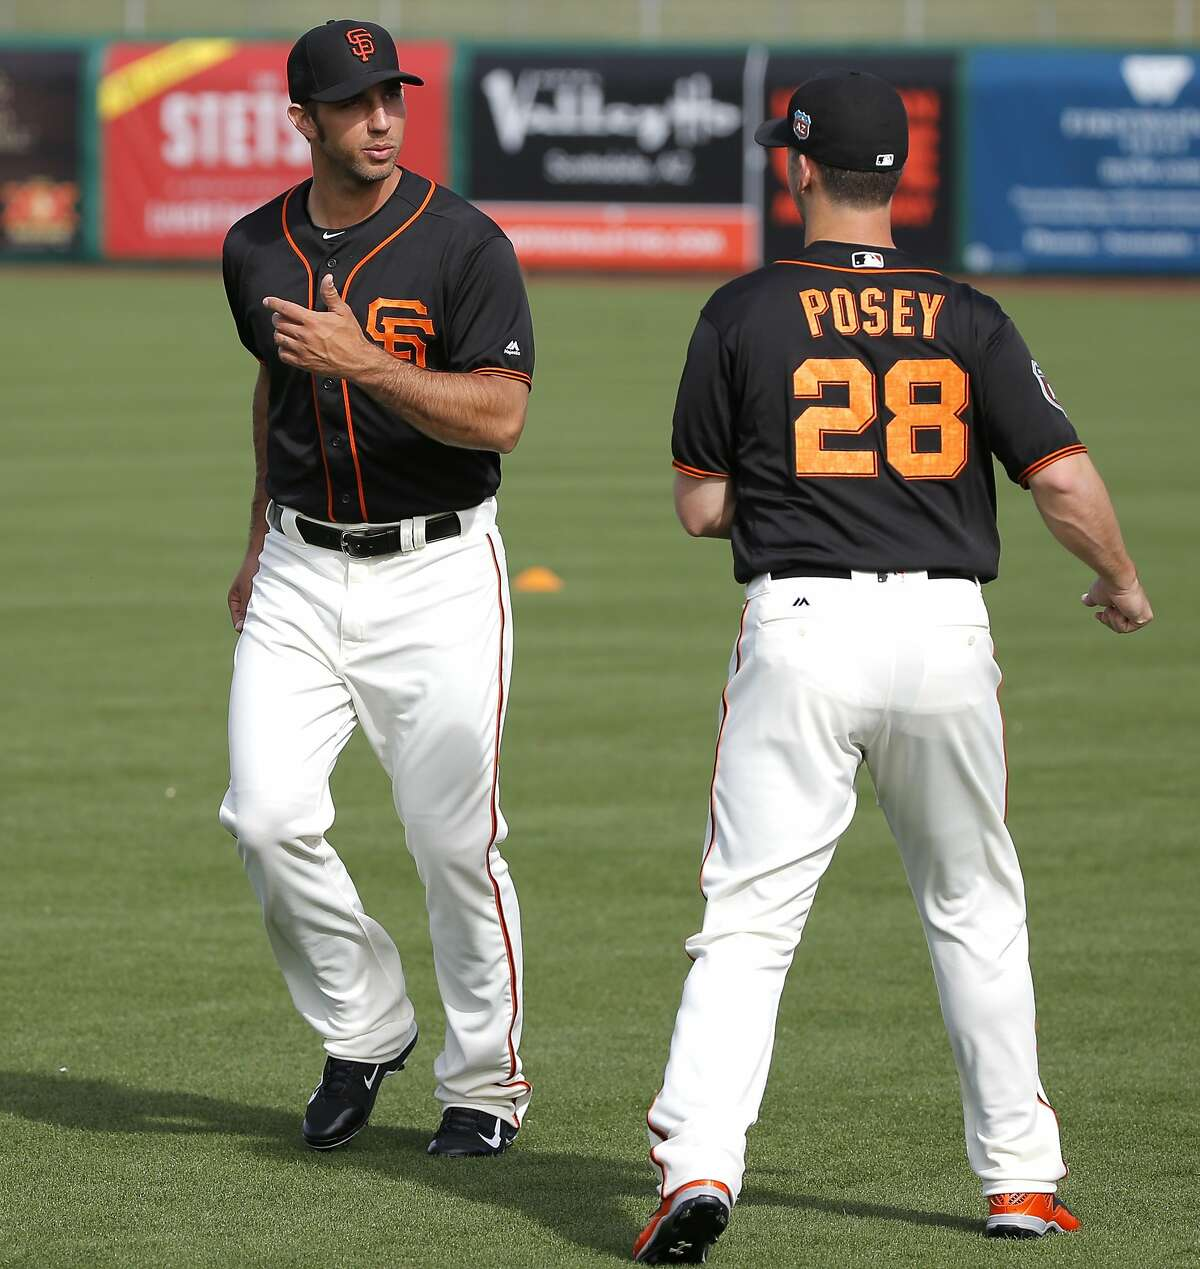 Madison Bumgarner, 40 and Buster Posey, 28 during morning workouts as the San Francisco Giants prepare to play the Los Angeles Angels at Scottsdale Stadium on Wed. March 2, 2016, in Scottsdale, Arizona.